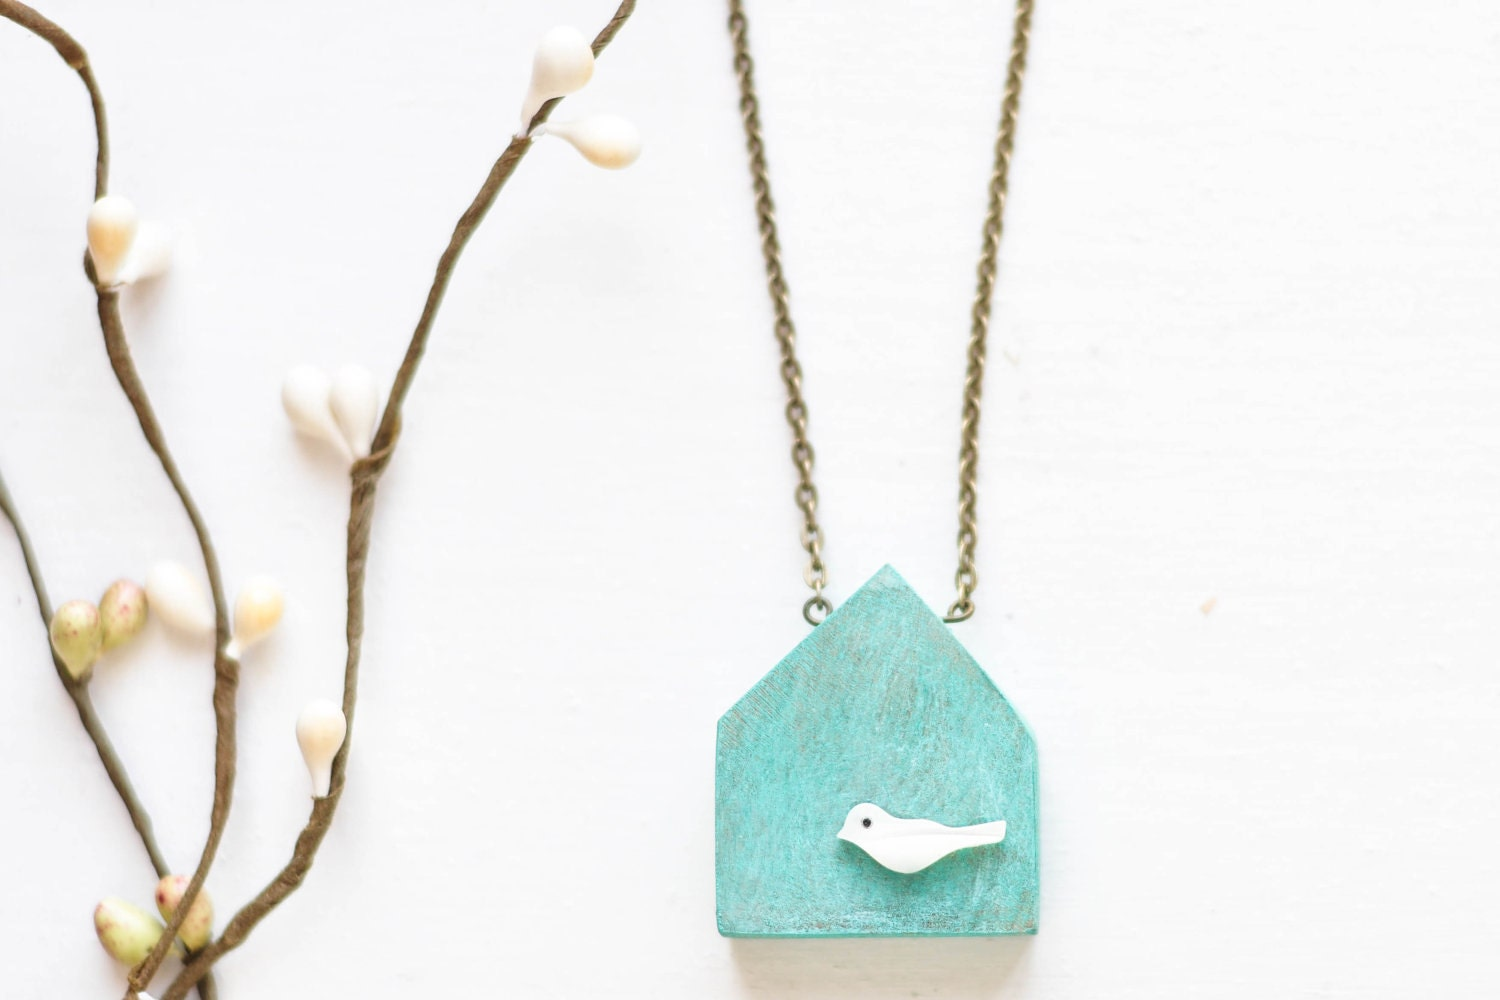 Wood house necklace with shell bird - blue wooden house pendant - patina - mint - CvetCvet